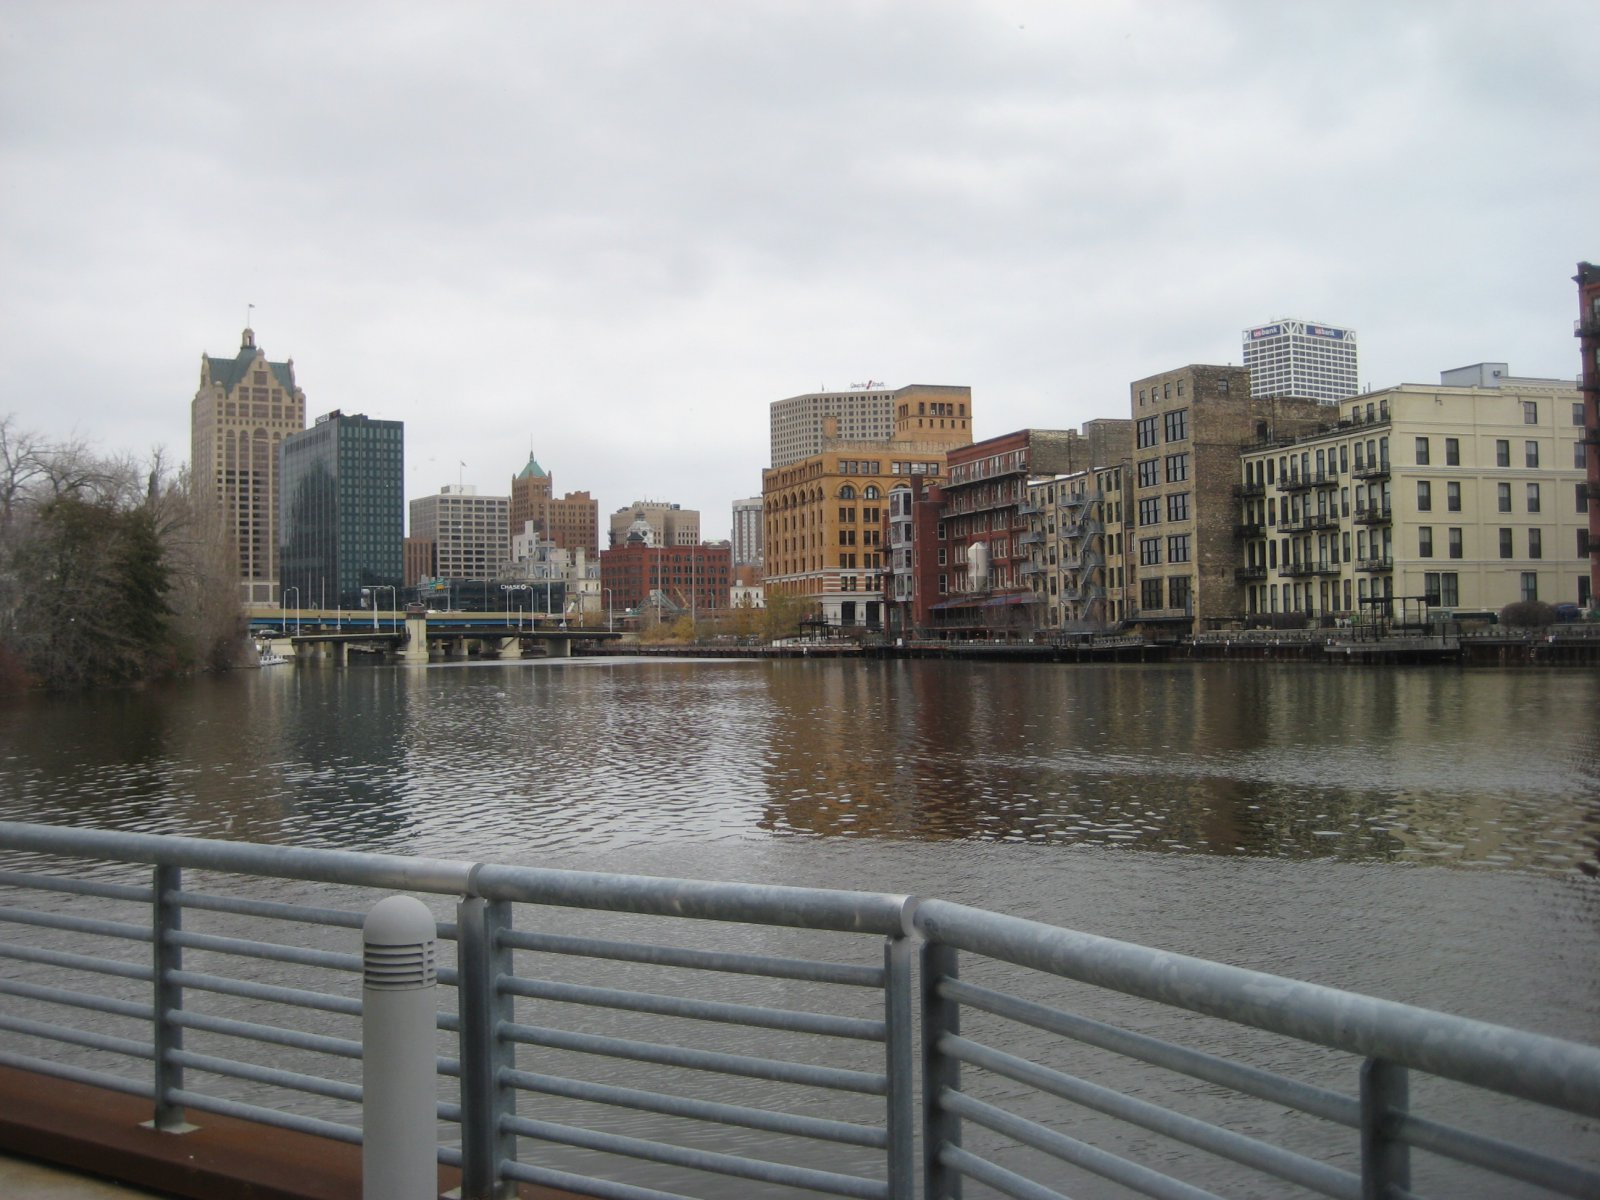 View of the Third Ward from The Point on the River.